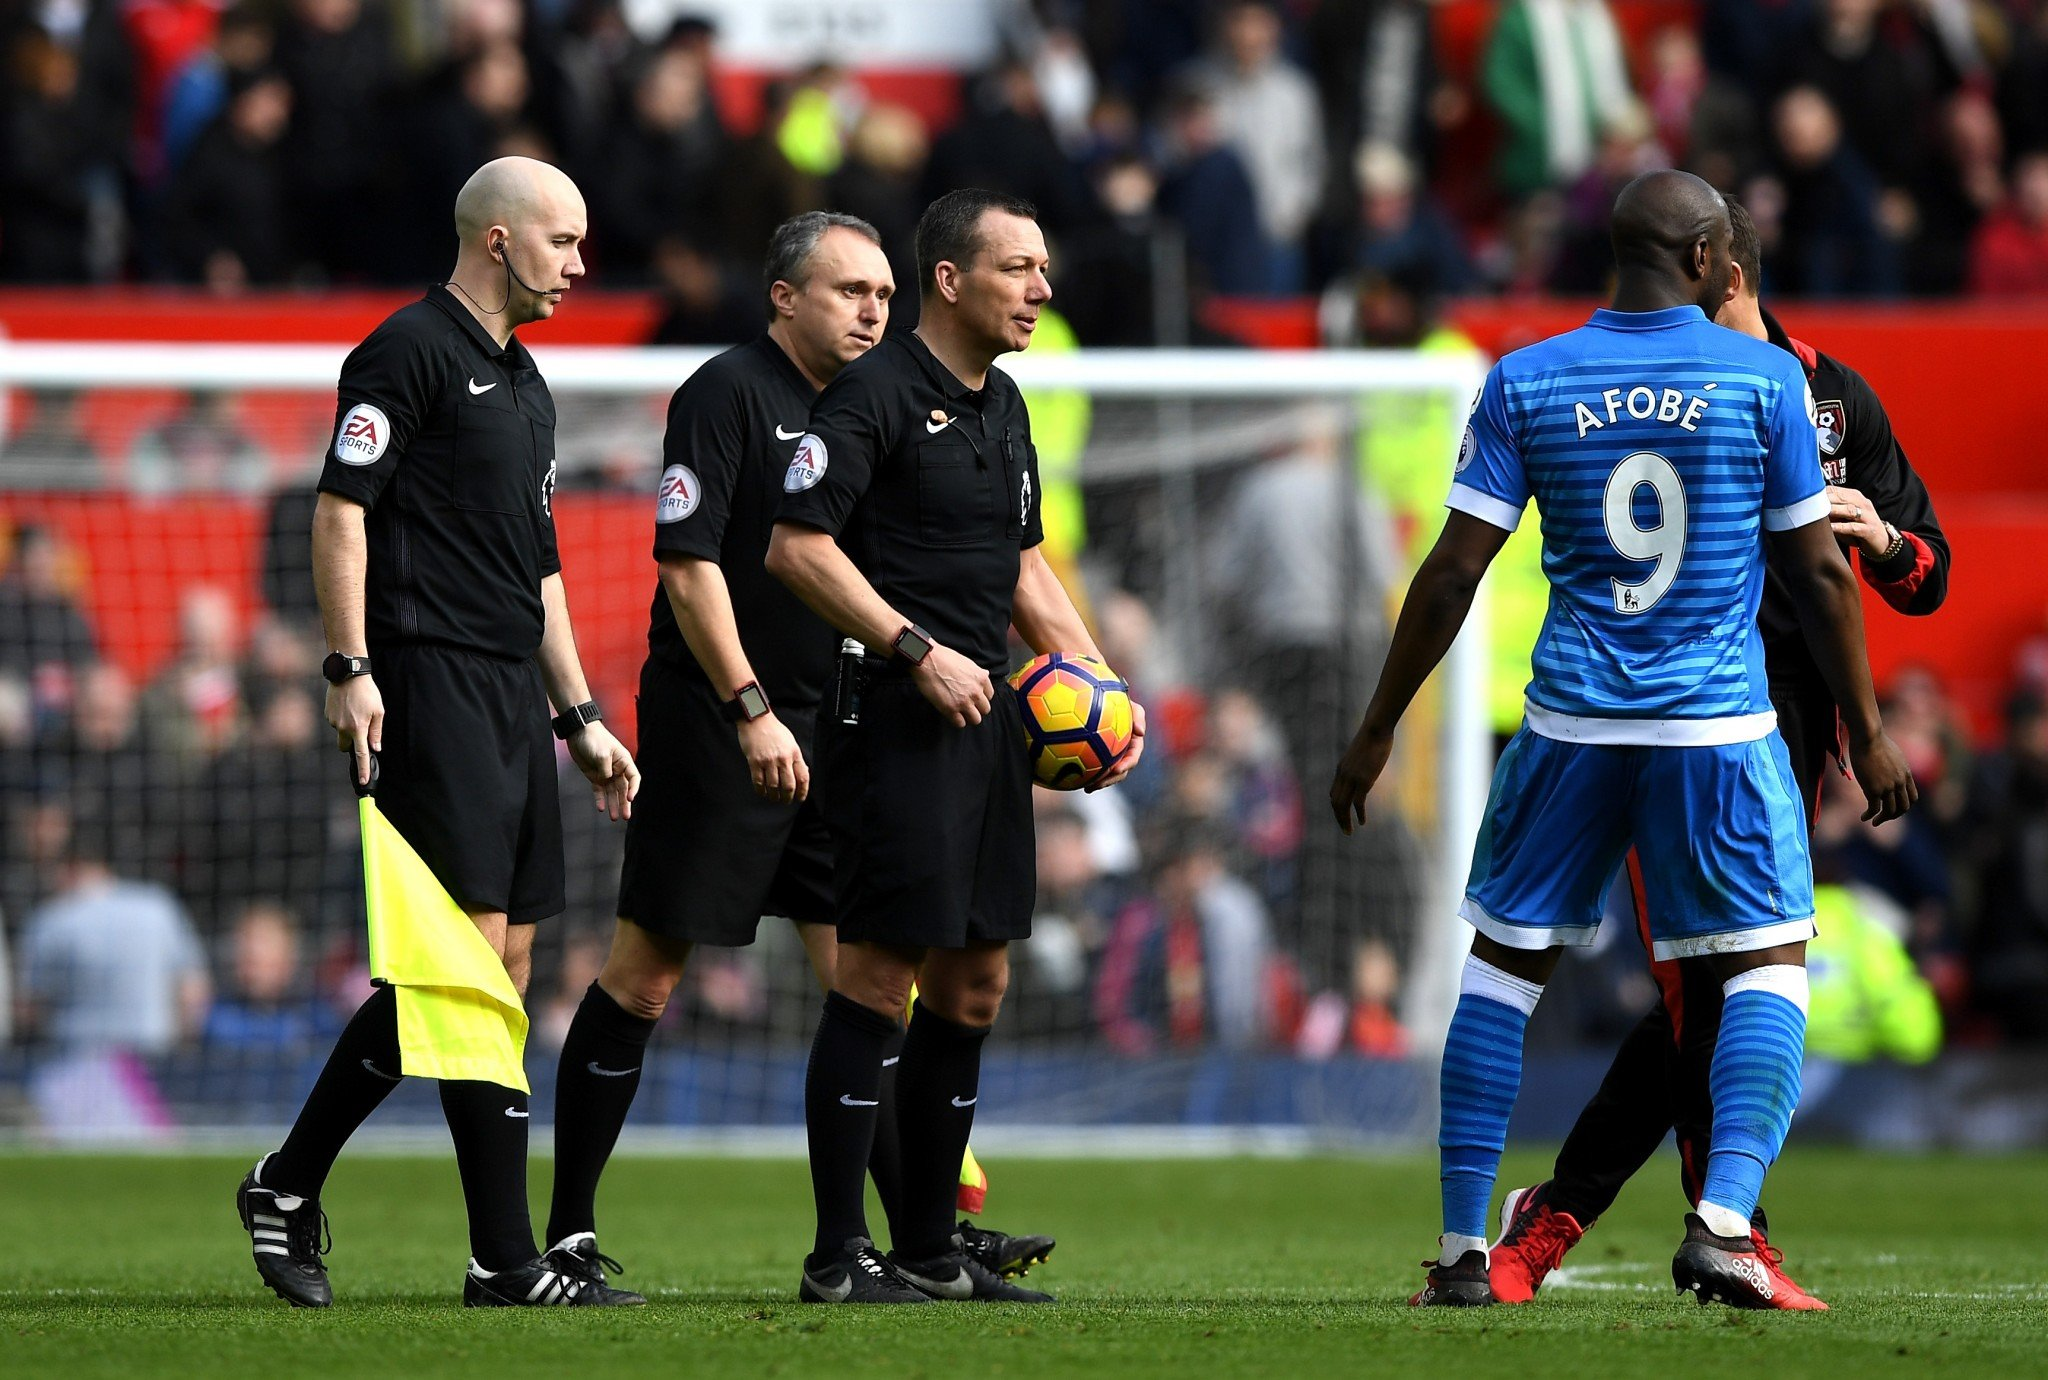 Benik Afobe challenges the officials after Andrew Surman's red card